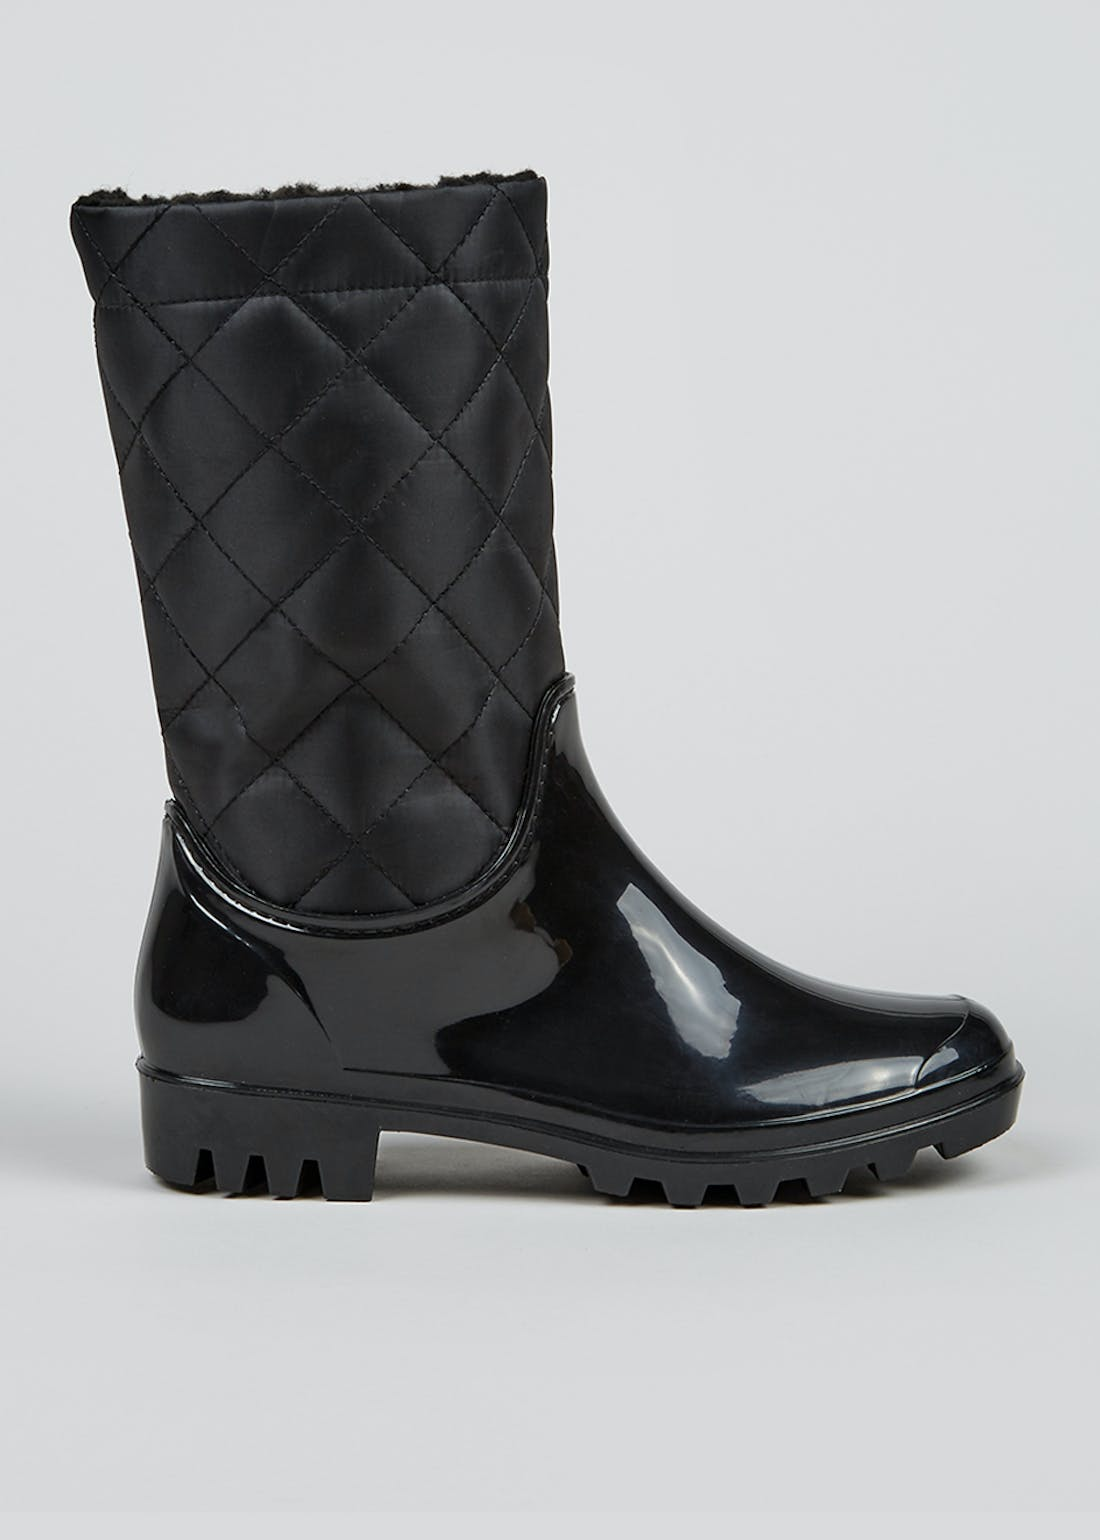 Black Quilted Teddy Fleece Lined Wellies